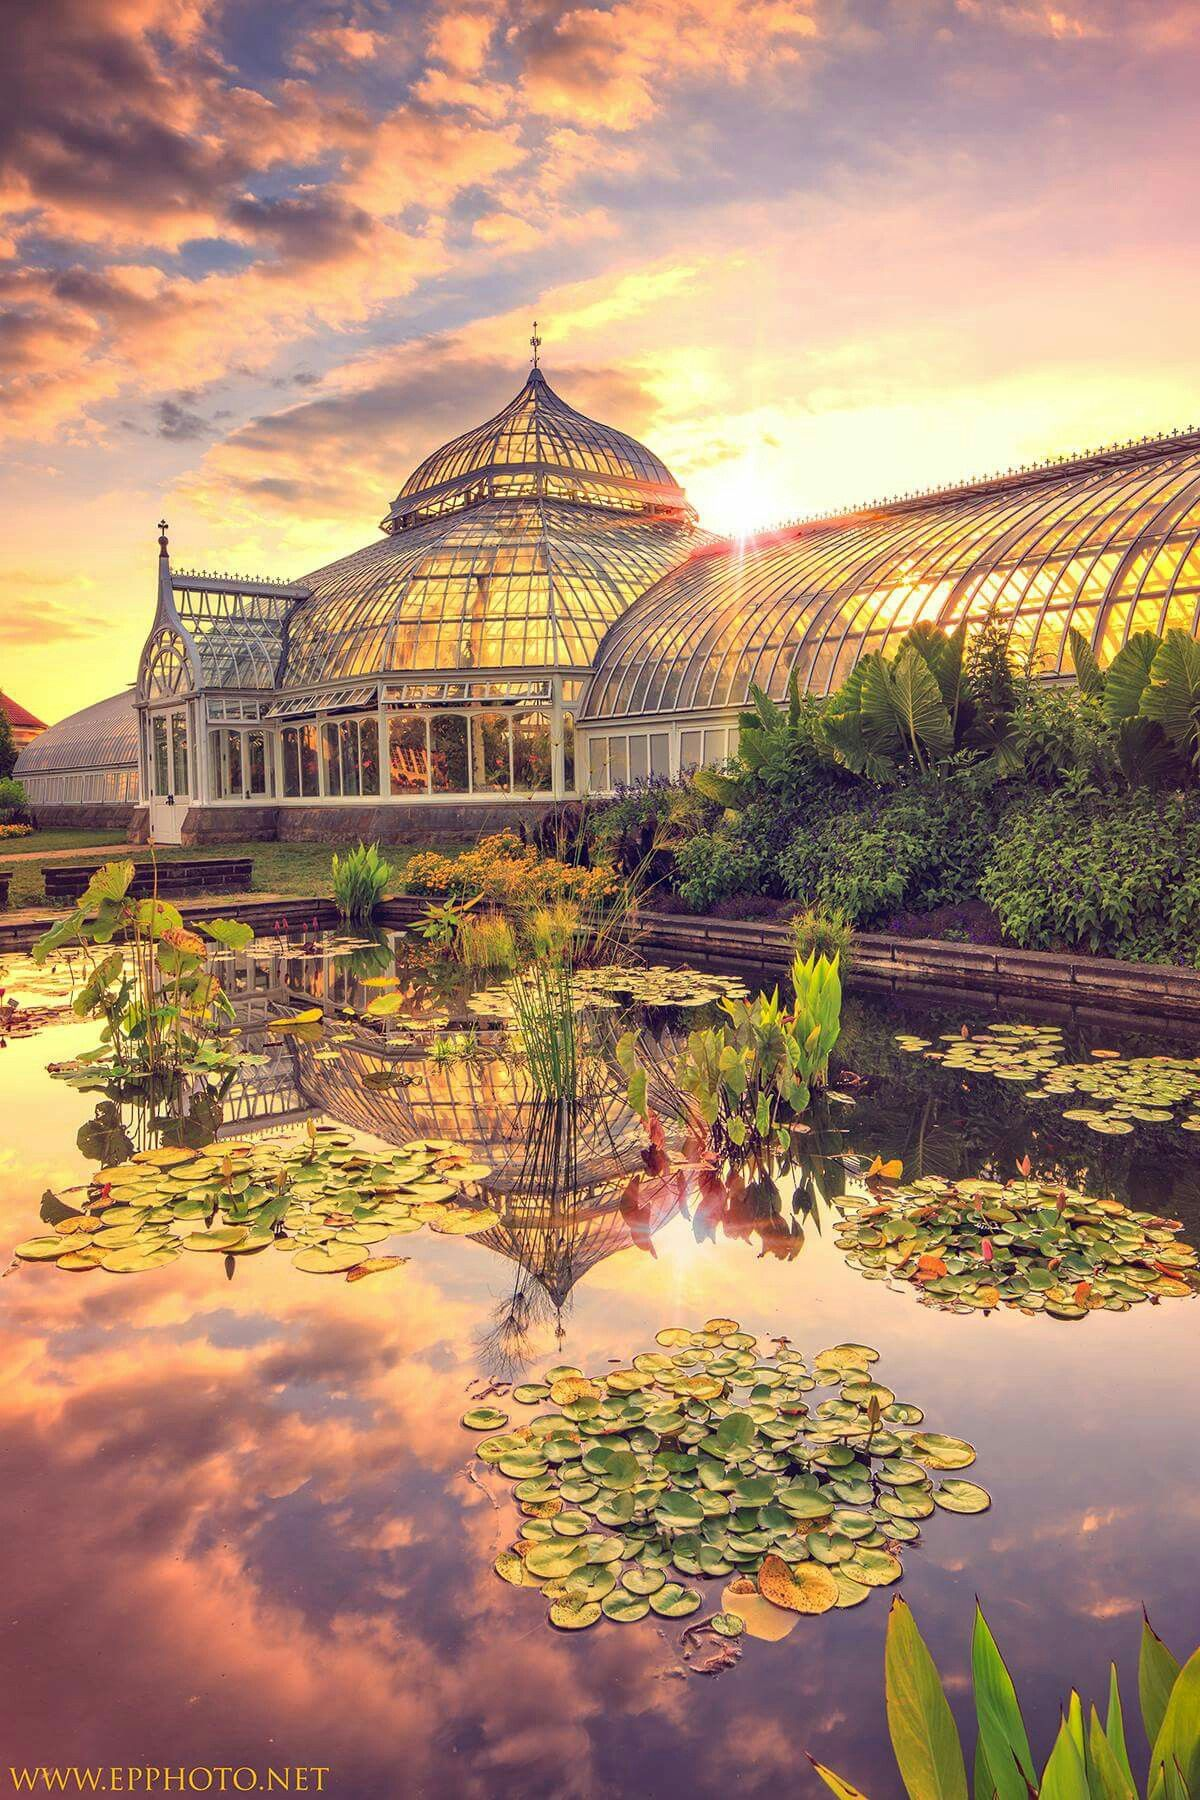 Phipps Conservatory in Pittsburgh, Pennsylvania by www.epphoto.net ...